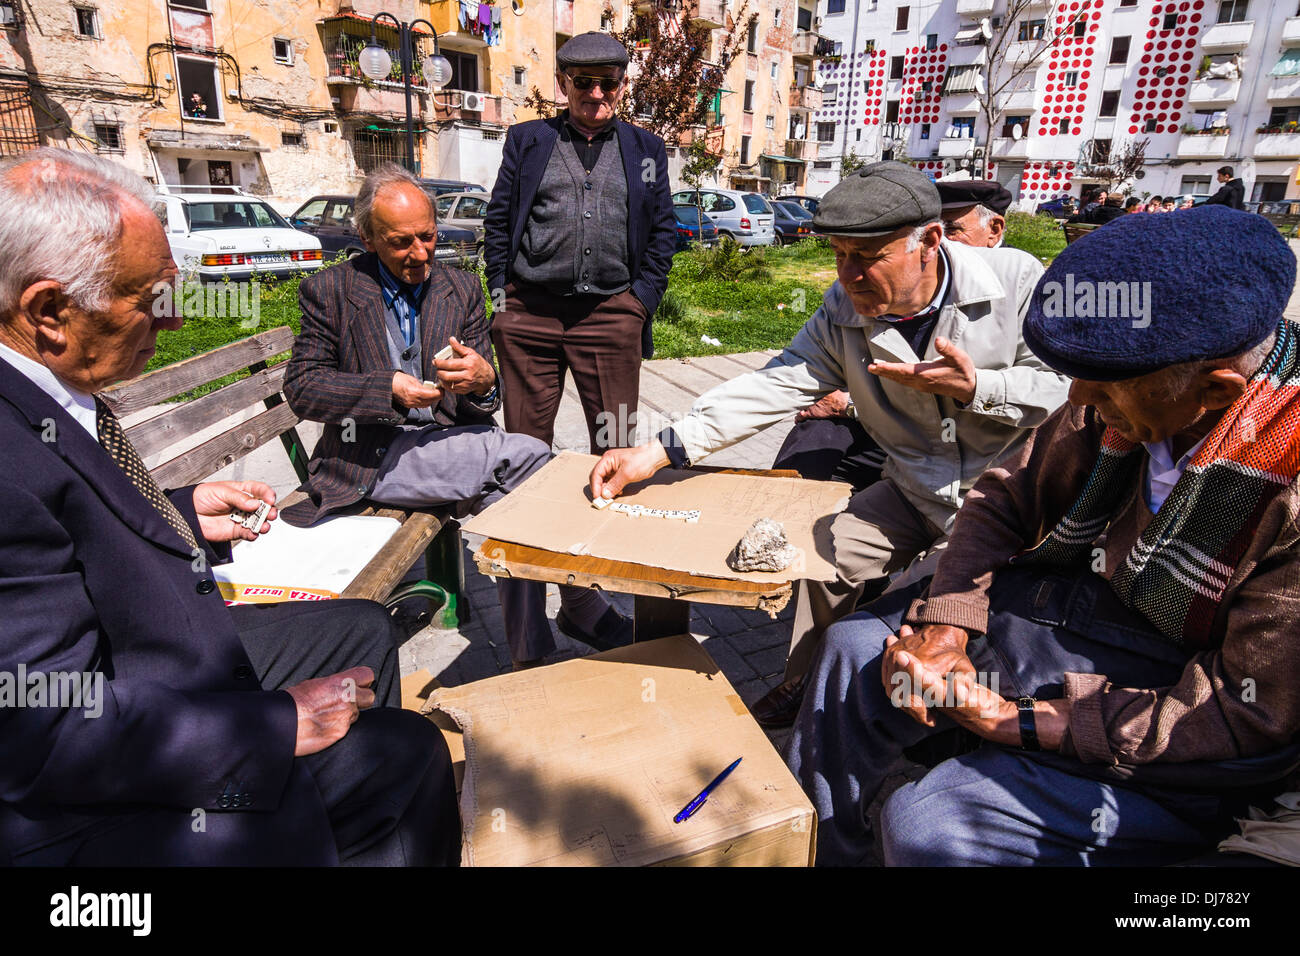 Old men playing domino in the street. Tirana, Albania - Stock Image